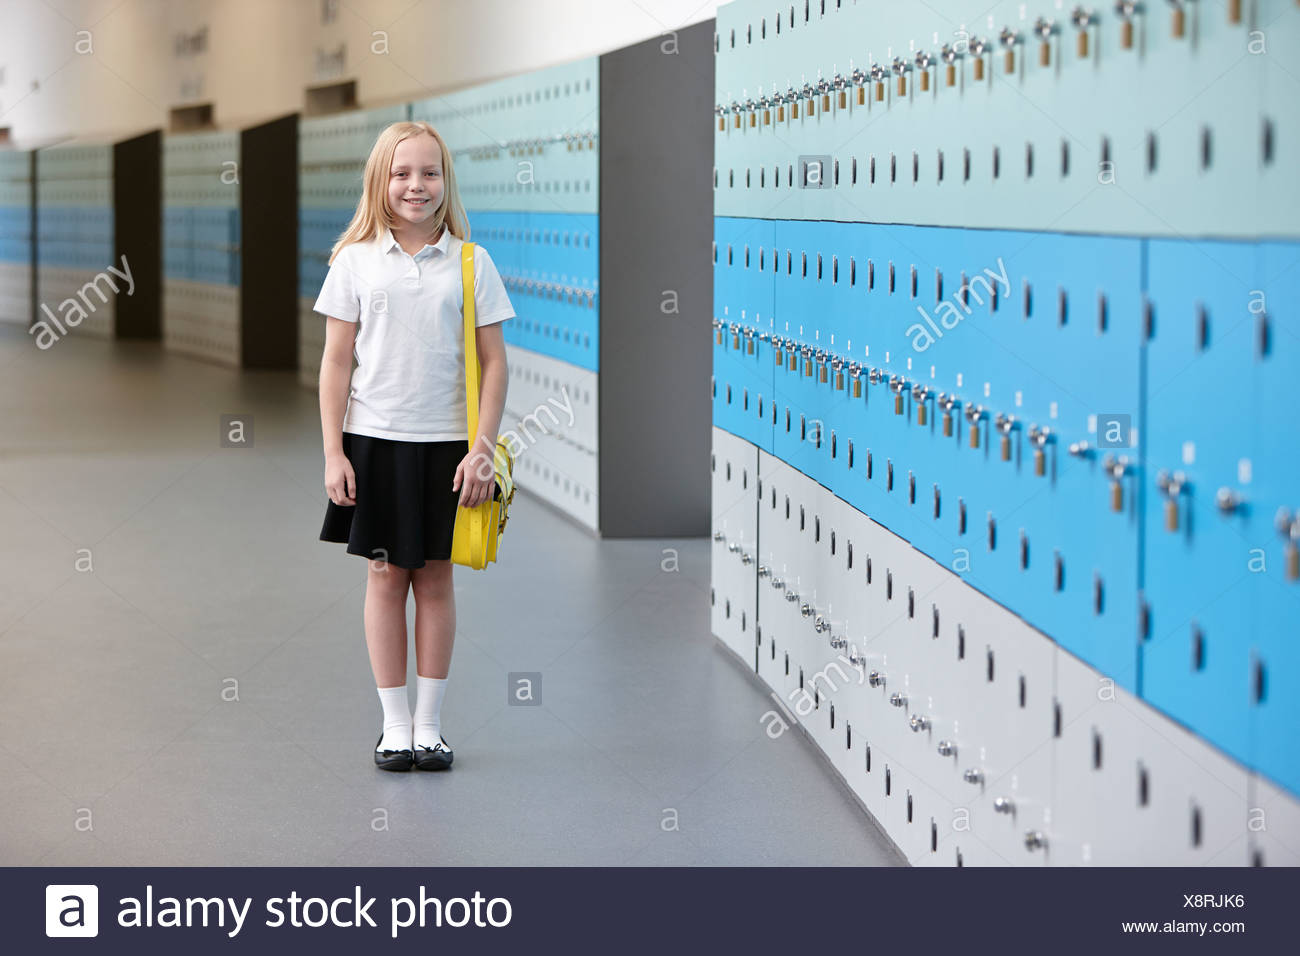 Portrait of schoolgirl in corridor - Stock Image